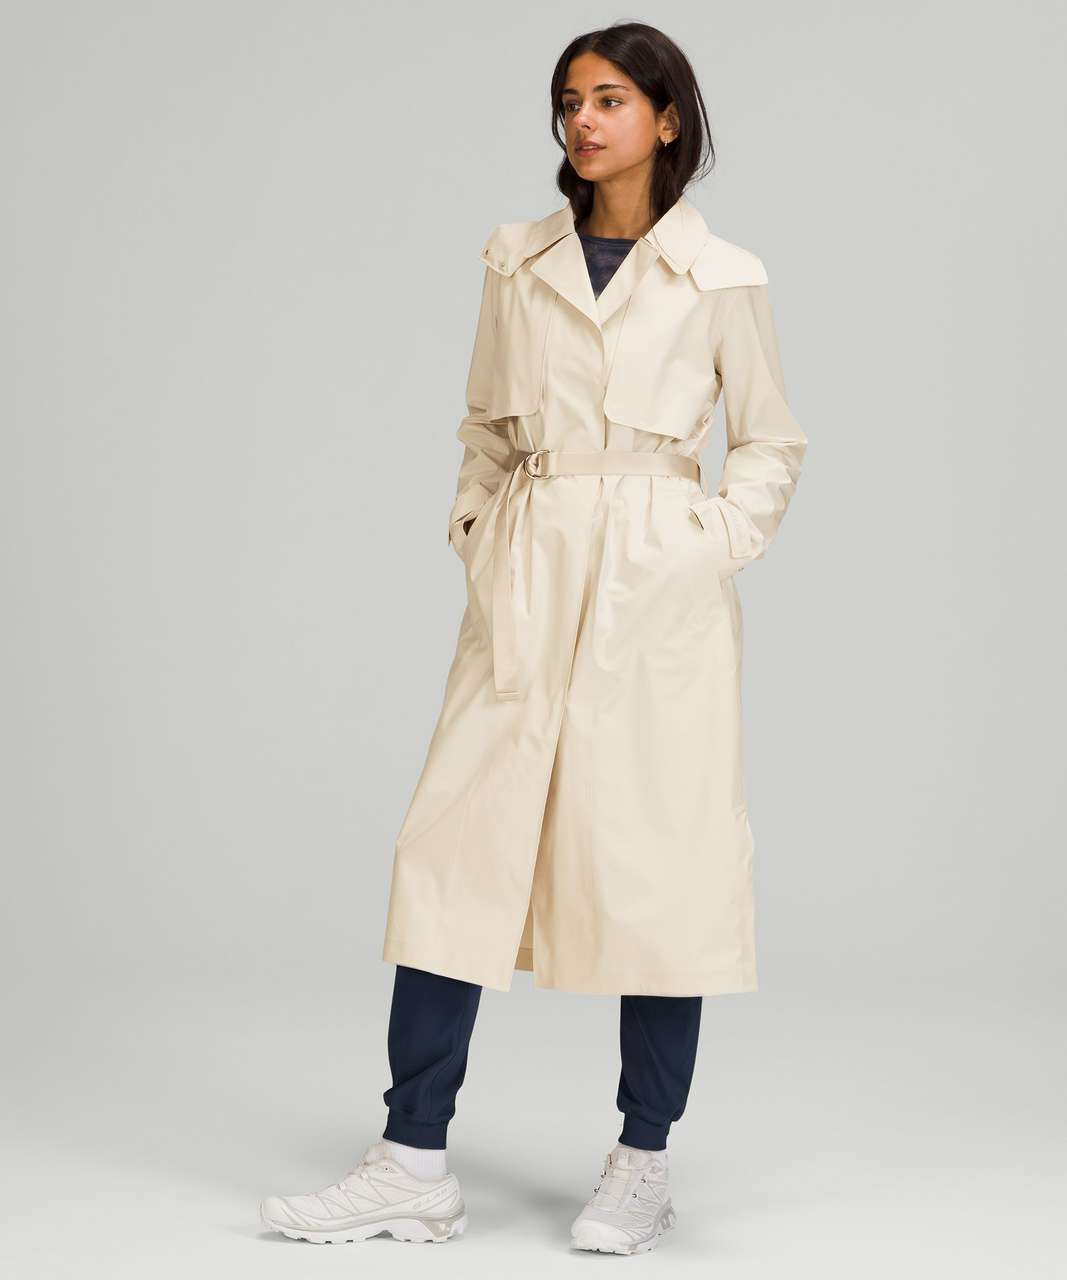 Lululemon Always There Trench Coat - White Opal